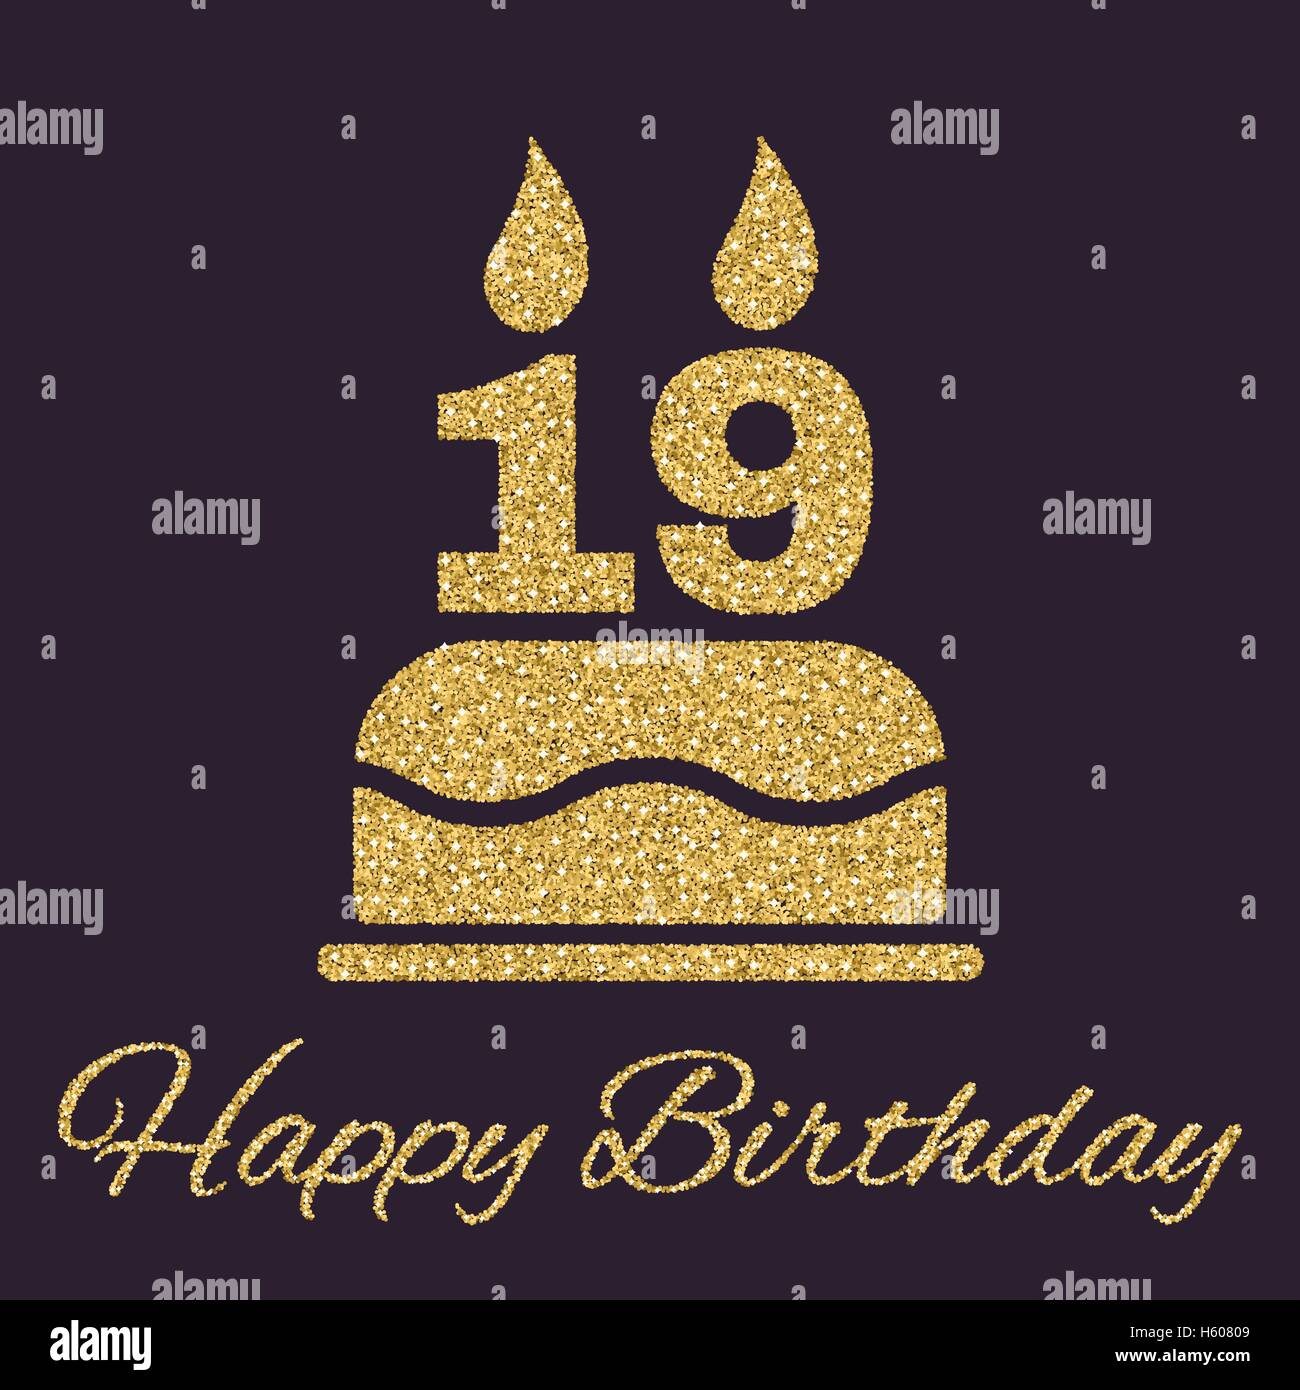 The Birthday Cake With Candles In Form Of Number 19 Icon Symbol Gold Sparkles And Glitter